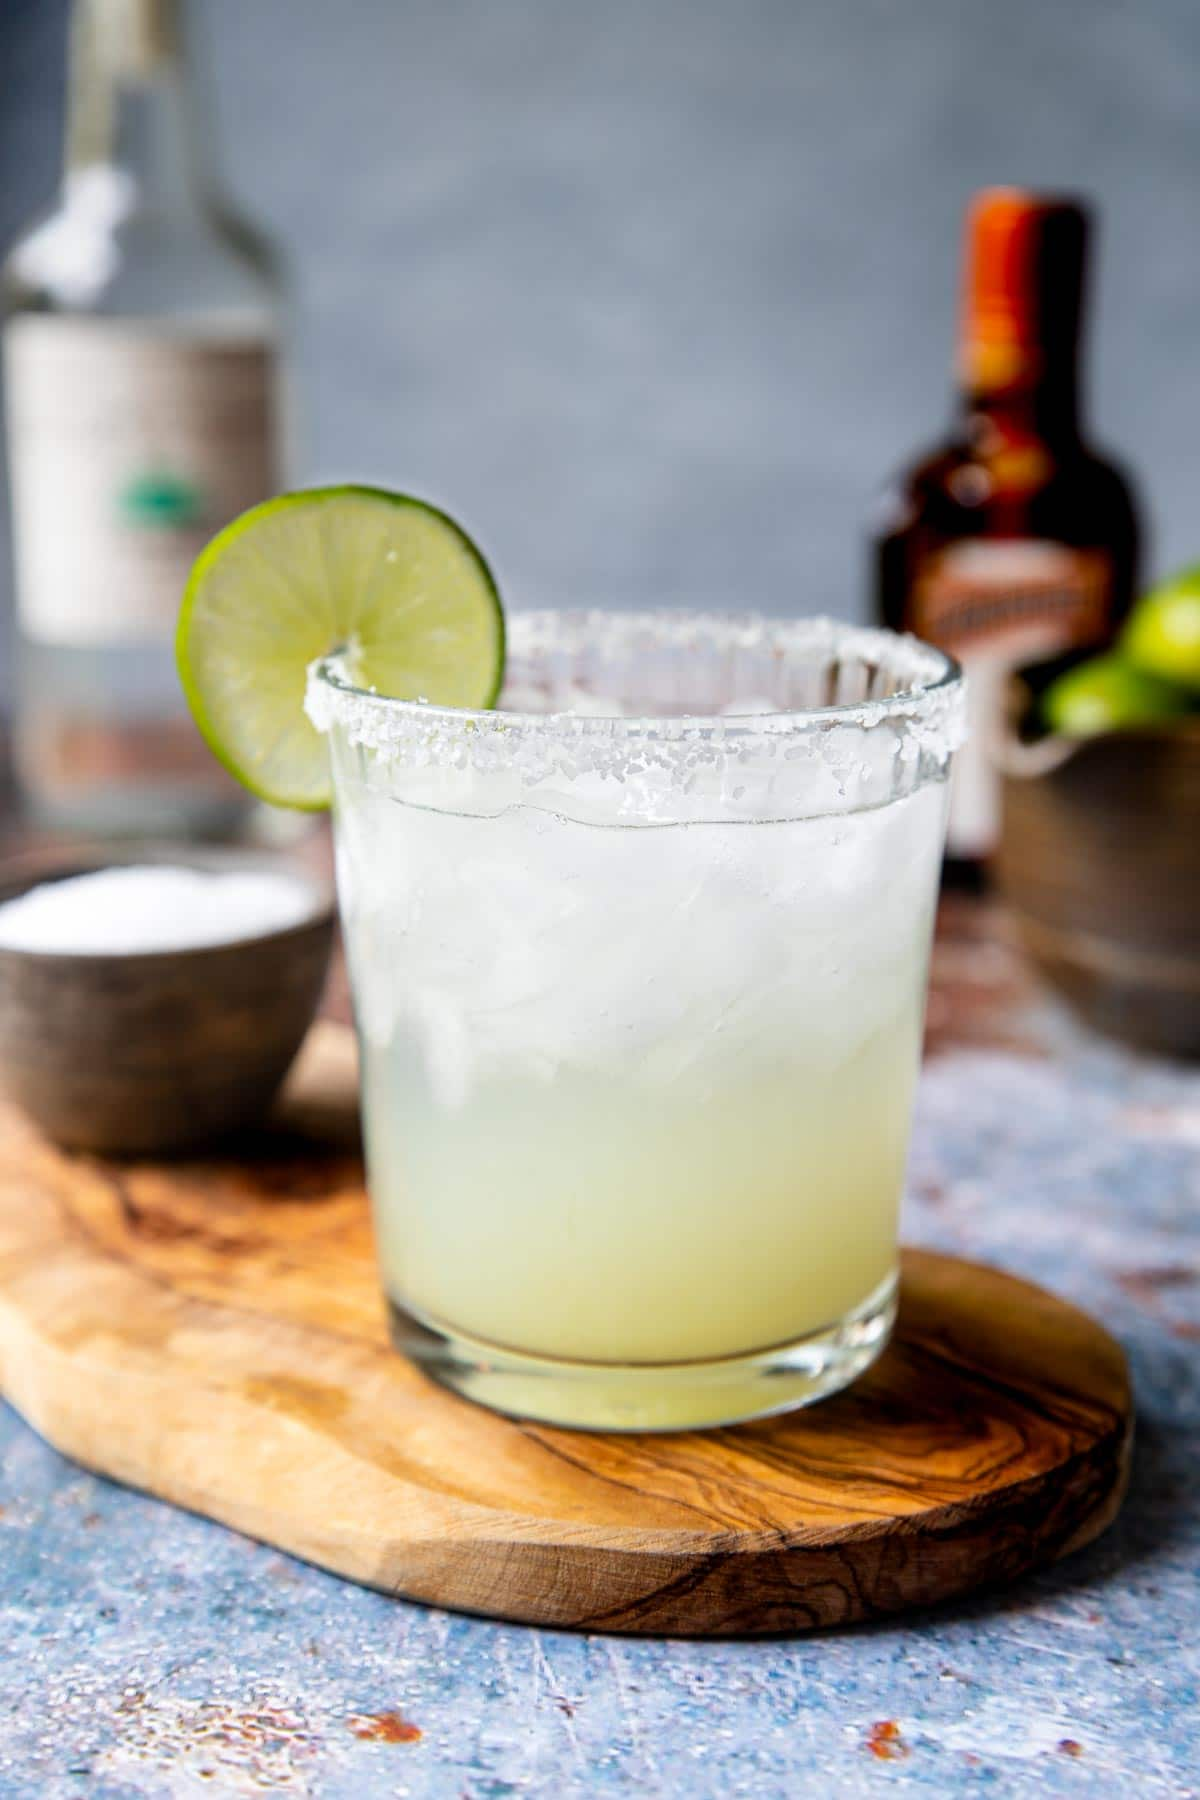 margarita on the rocks with a lime garnish